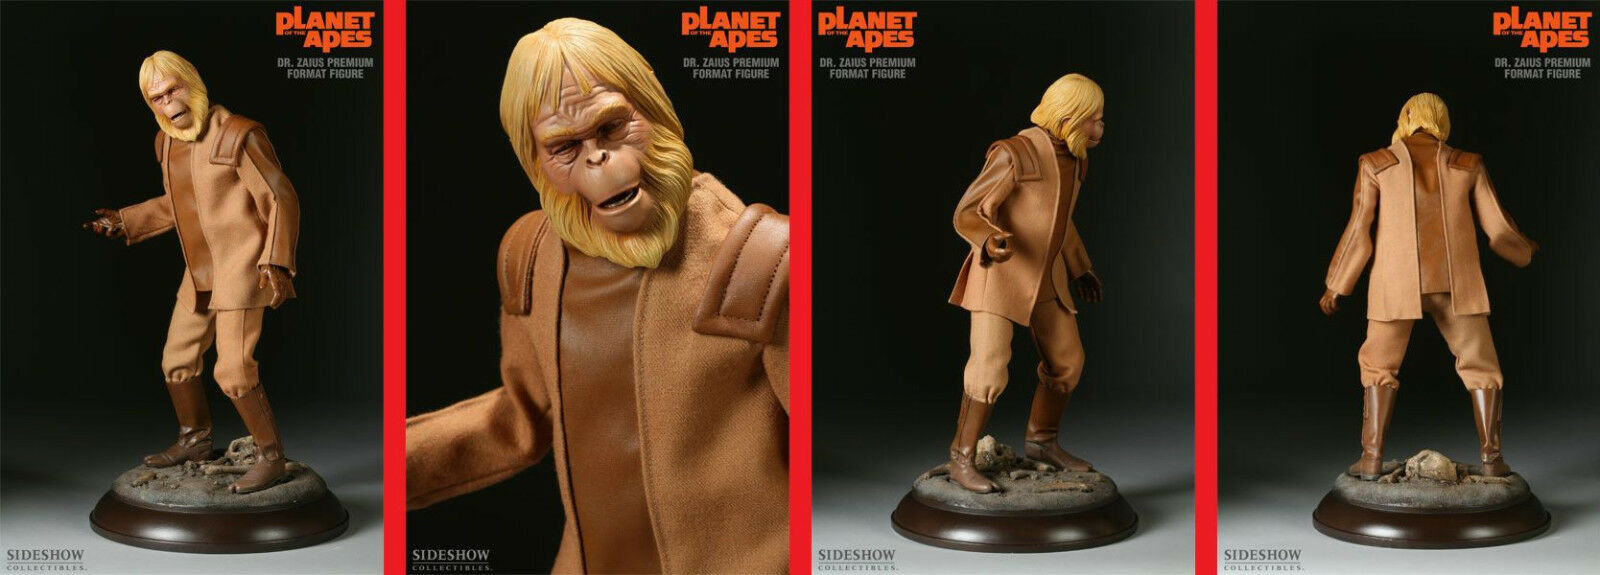 SIDESHOW –  Planet of the Apes – Dr. Zaius – Premium Format 1 4